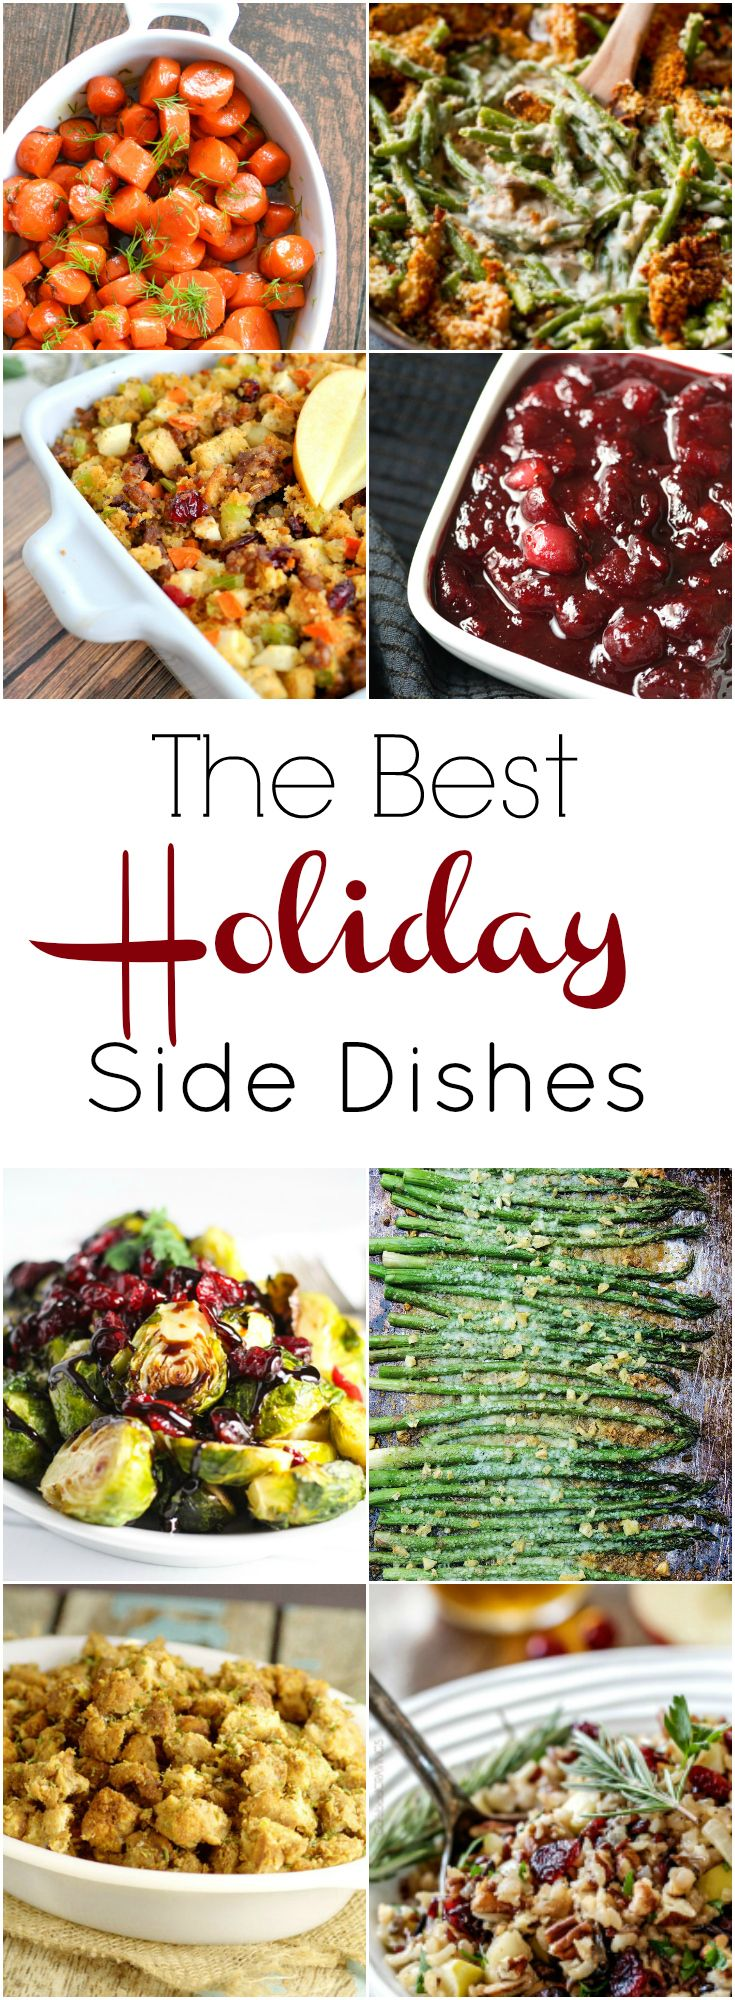 The best holiday side dishes. Perfect for Thanksgiving and Christmas!